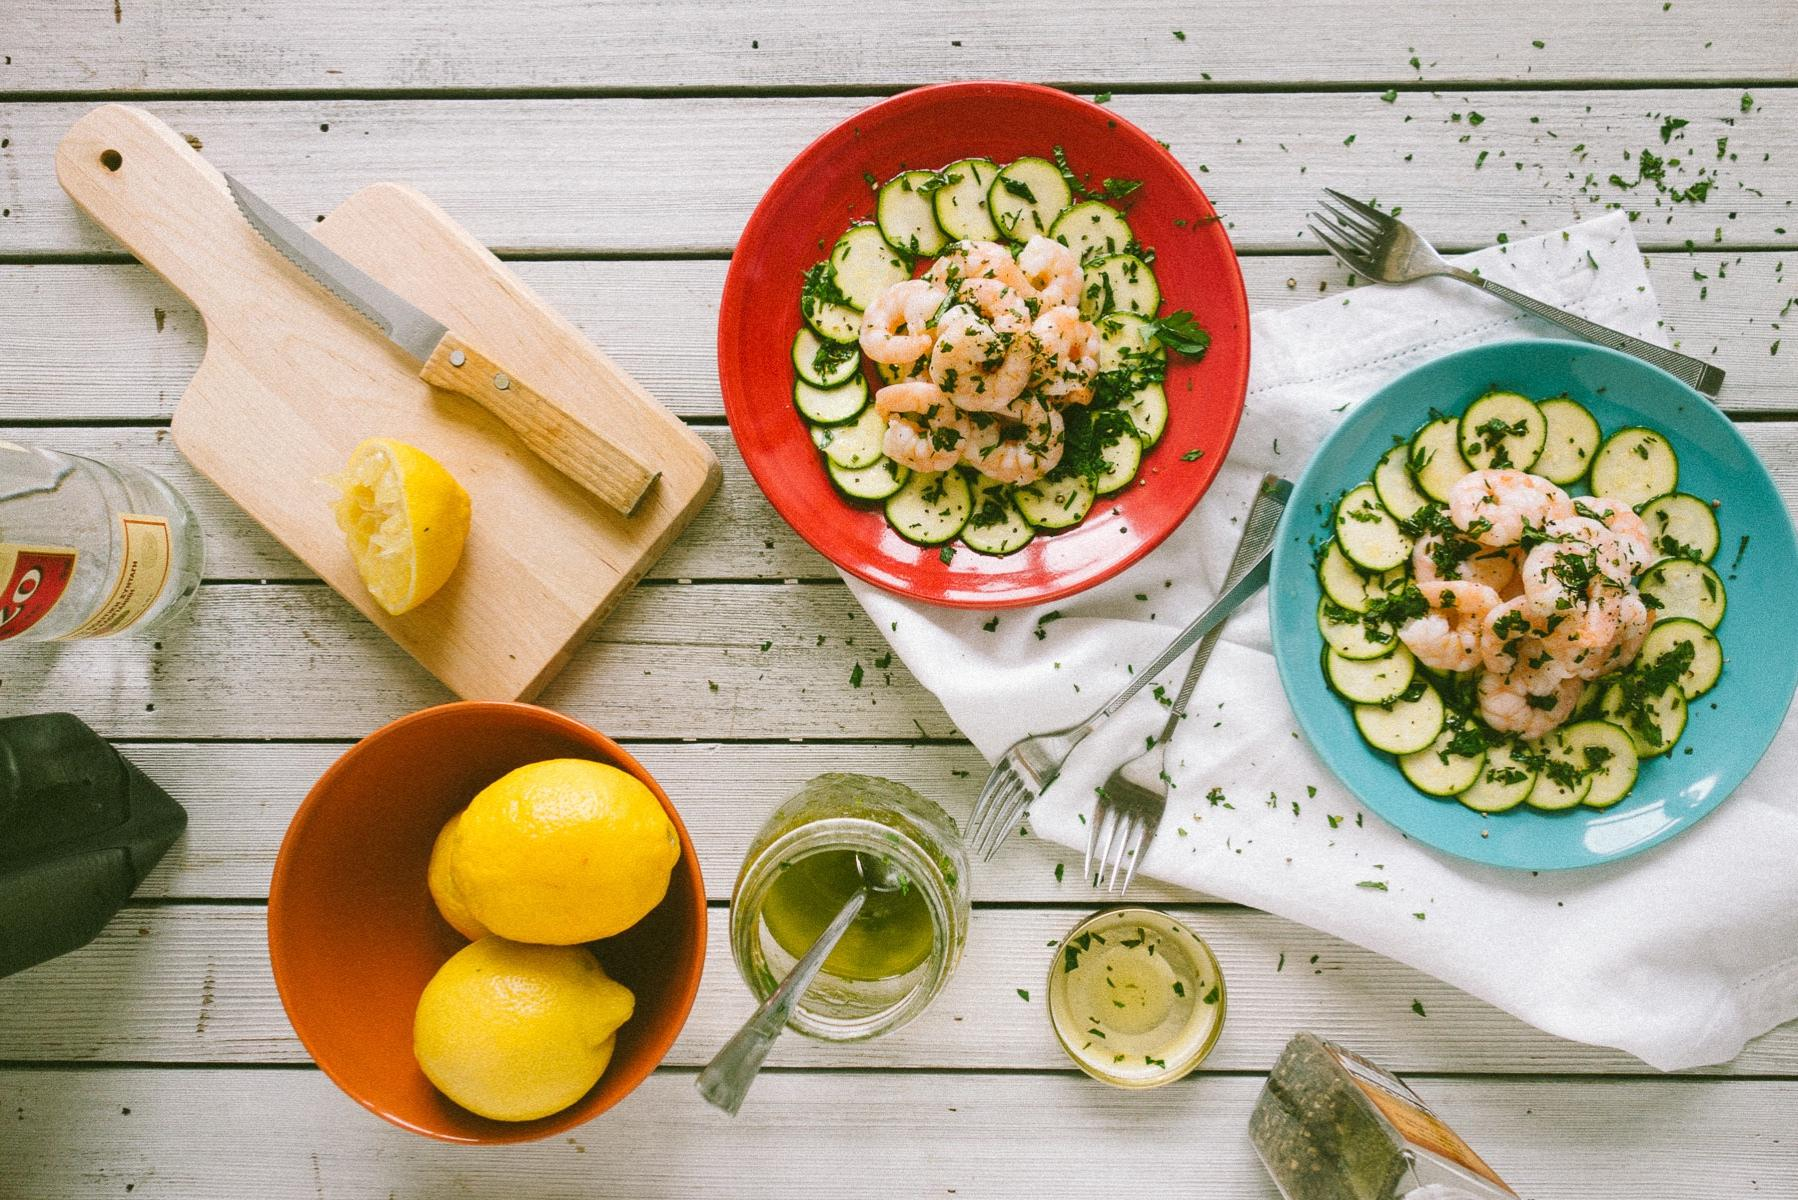 zucchini carpaccio with prawns and an ouzo salad dressing